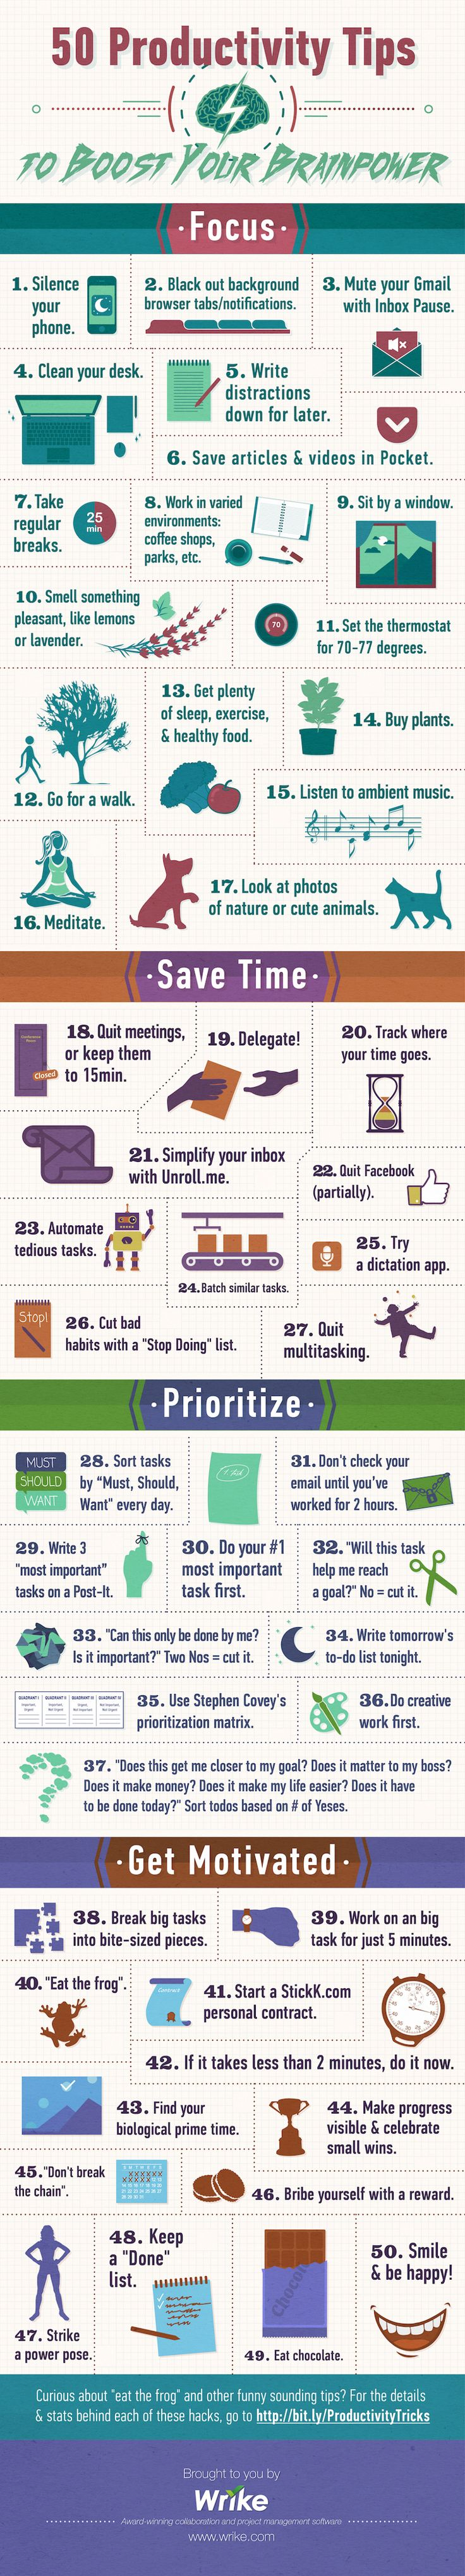 50 Ways to Improve Personal Productivity #infographic #infografía